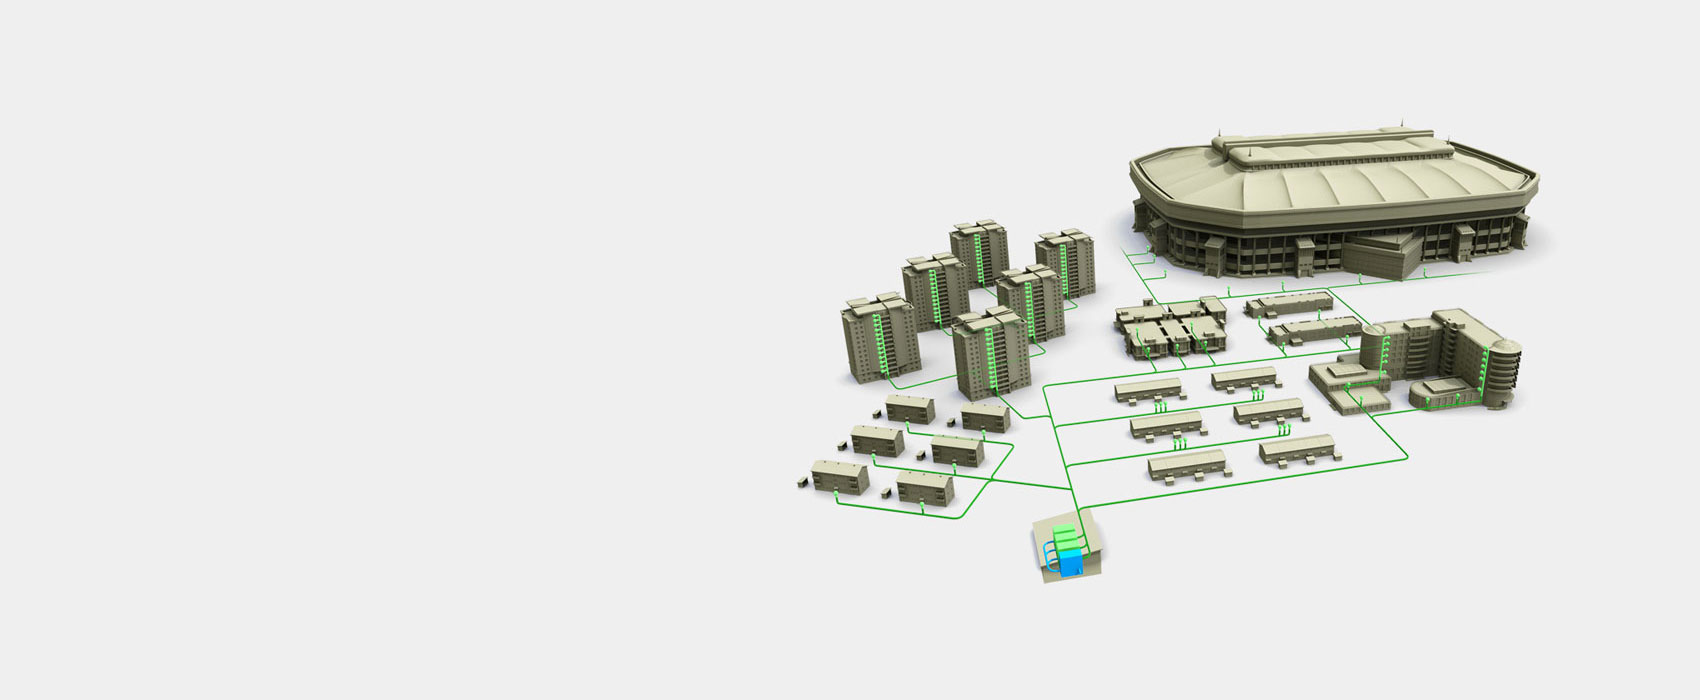 How waste management works with the Logiwaste automated